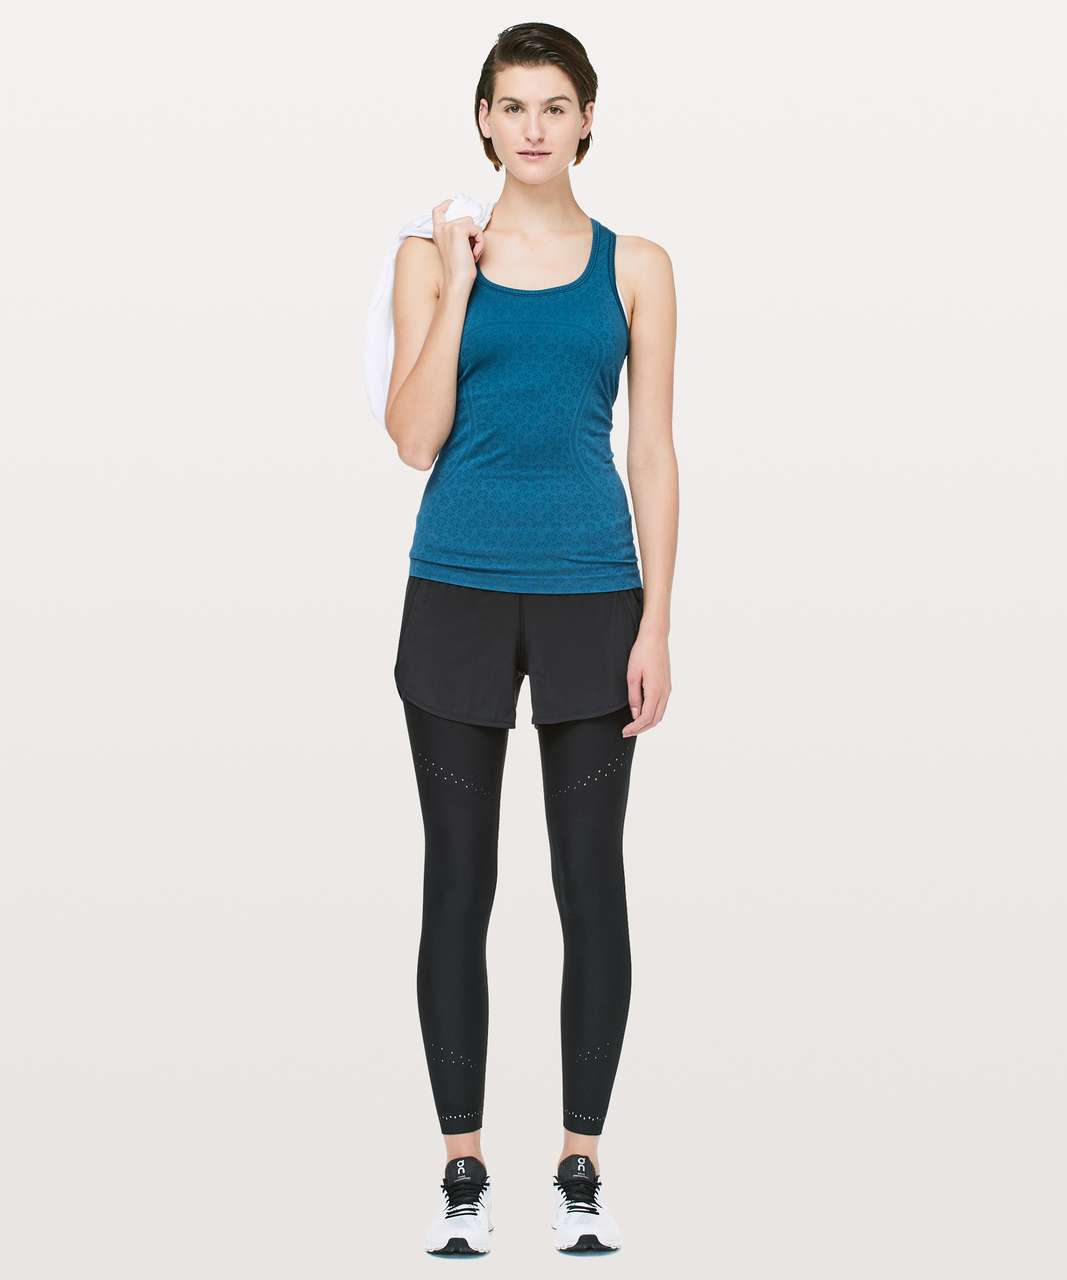 Lululemon Swiftly Tech Racerback - Carbon Blue / Carbon Blue